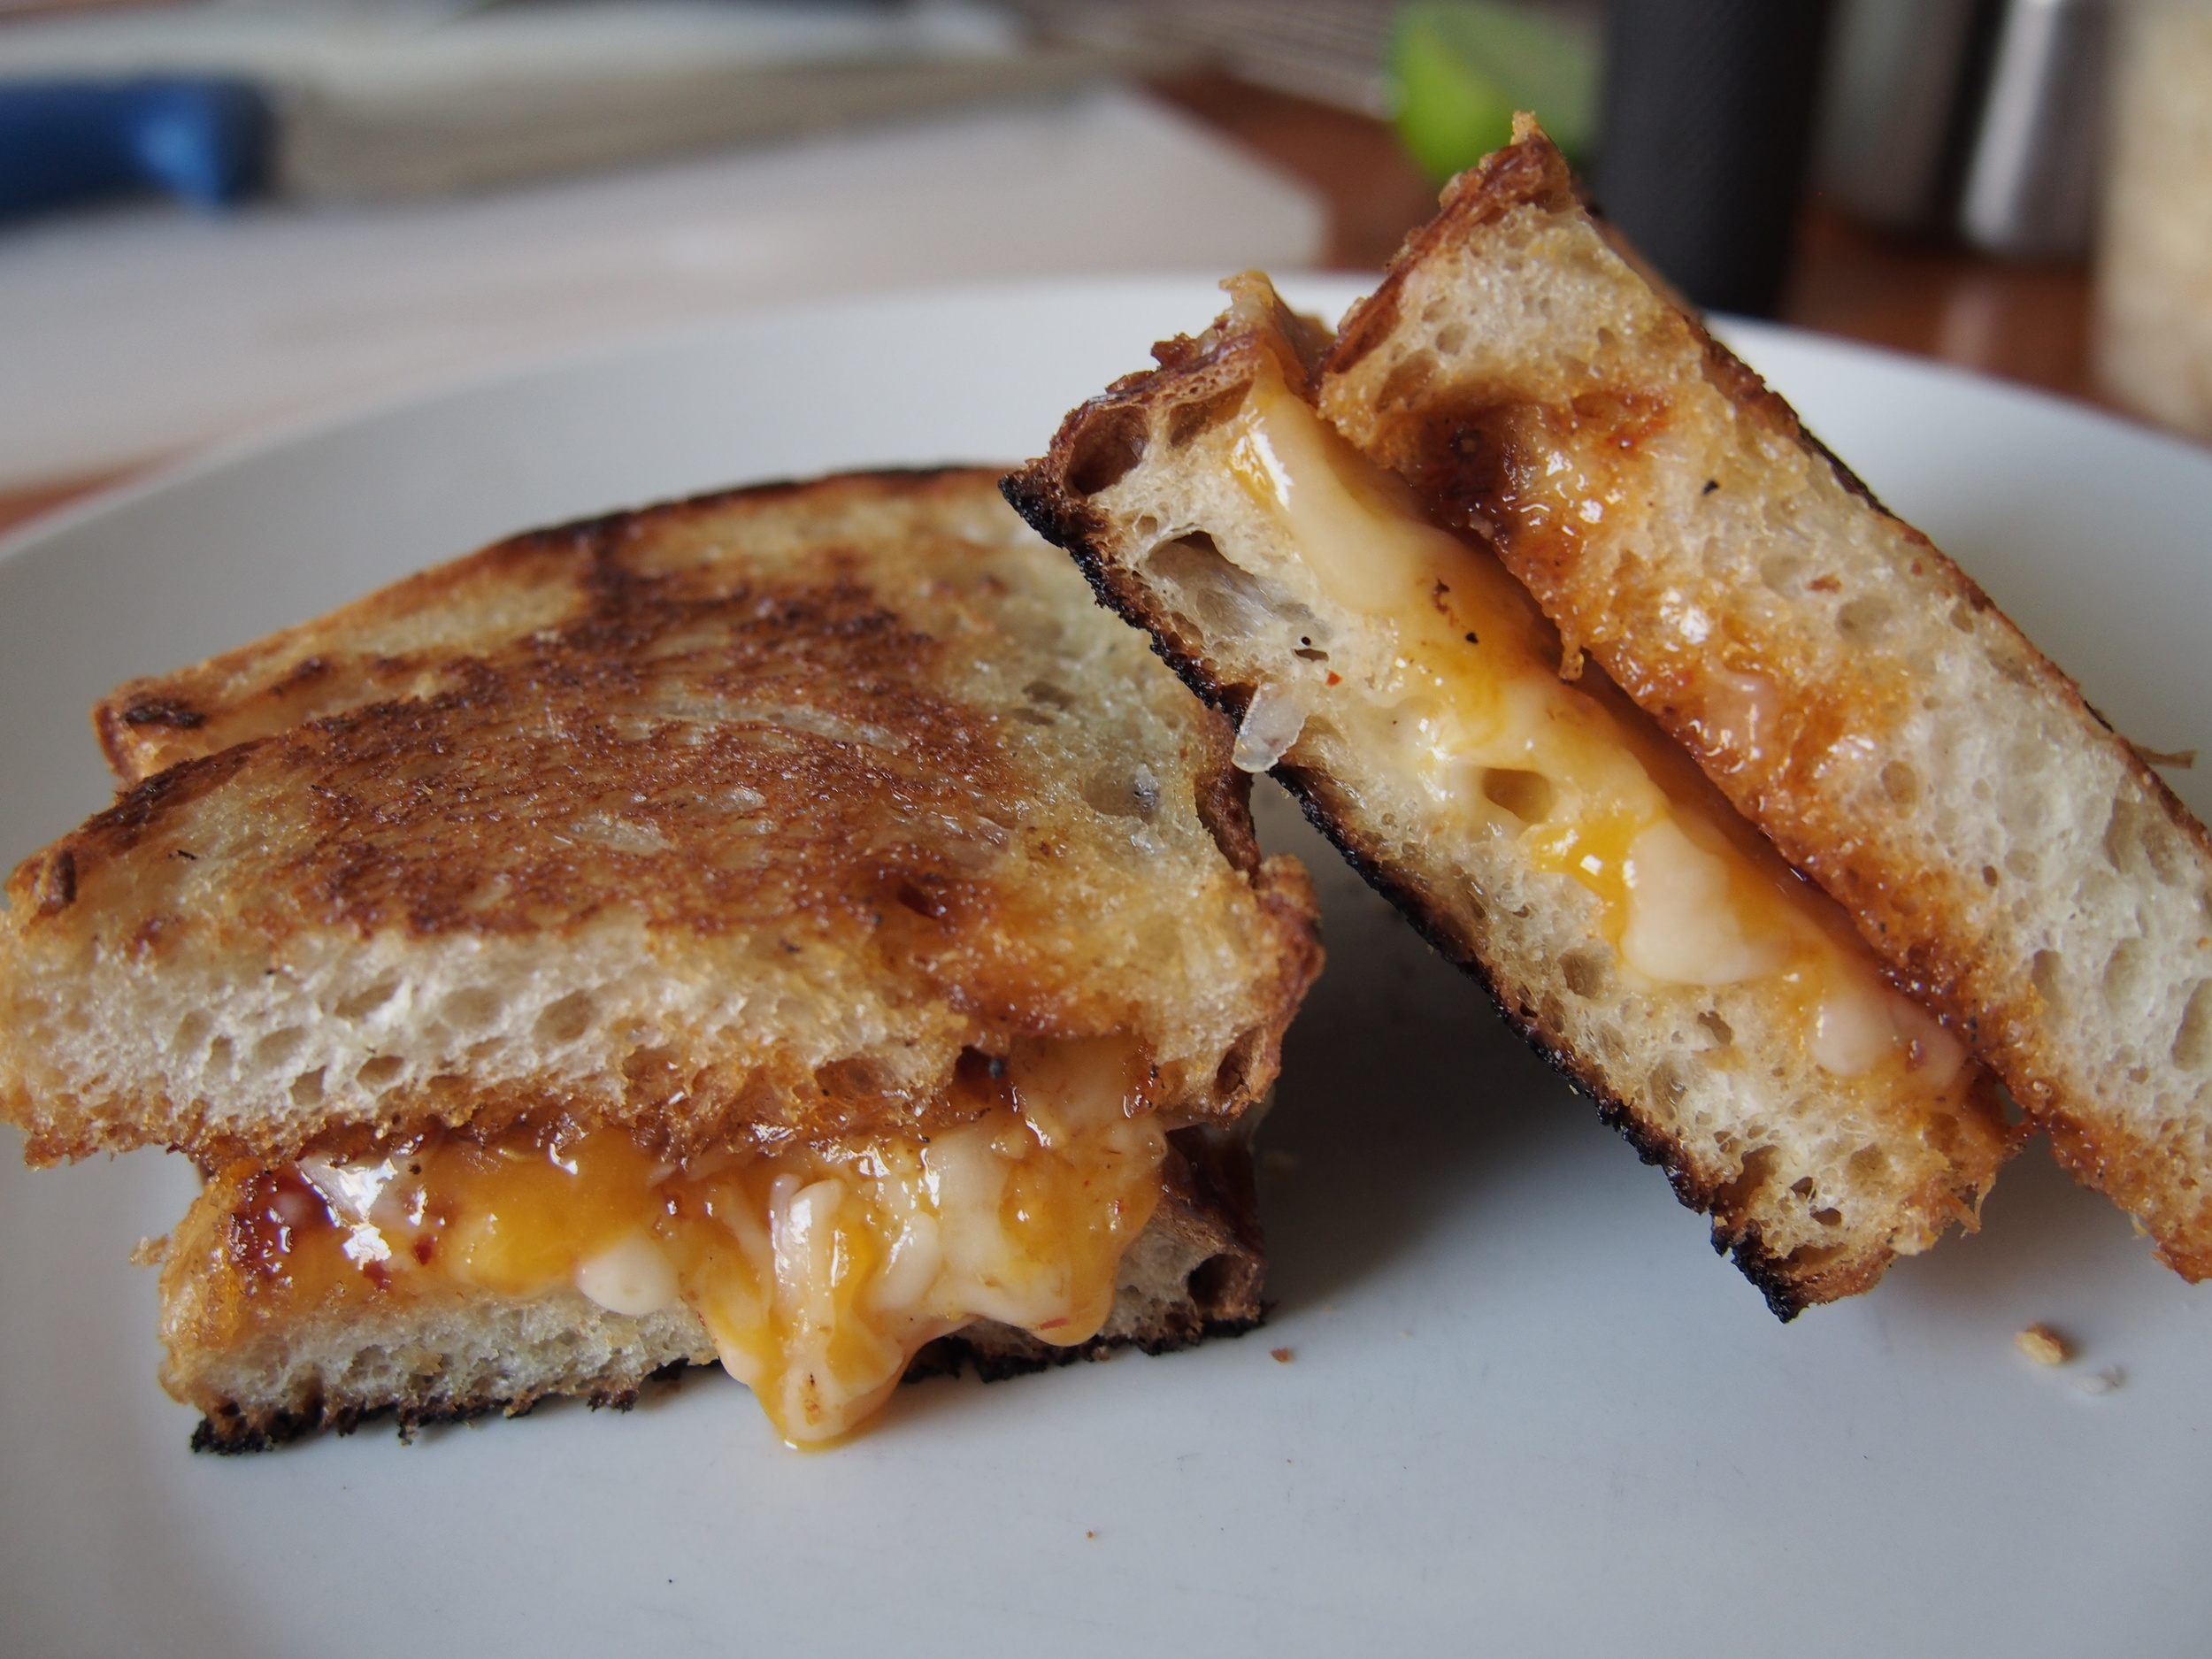 Gruyere, Cheddar, and Pepper Jack Grilled Cheese Sandwich with Thai Roast Chili Jam